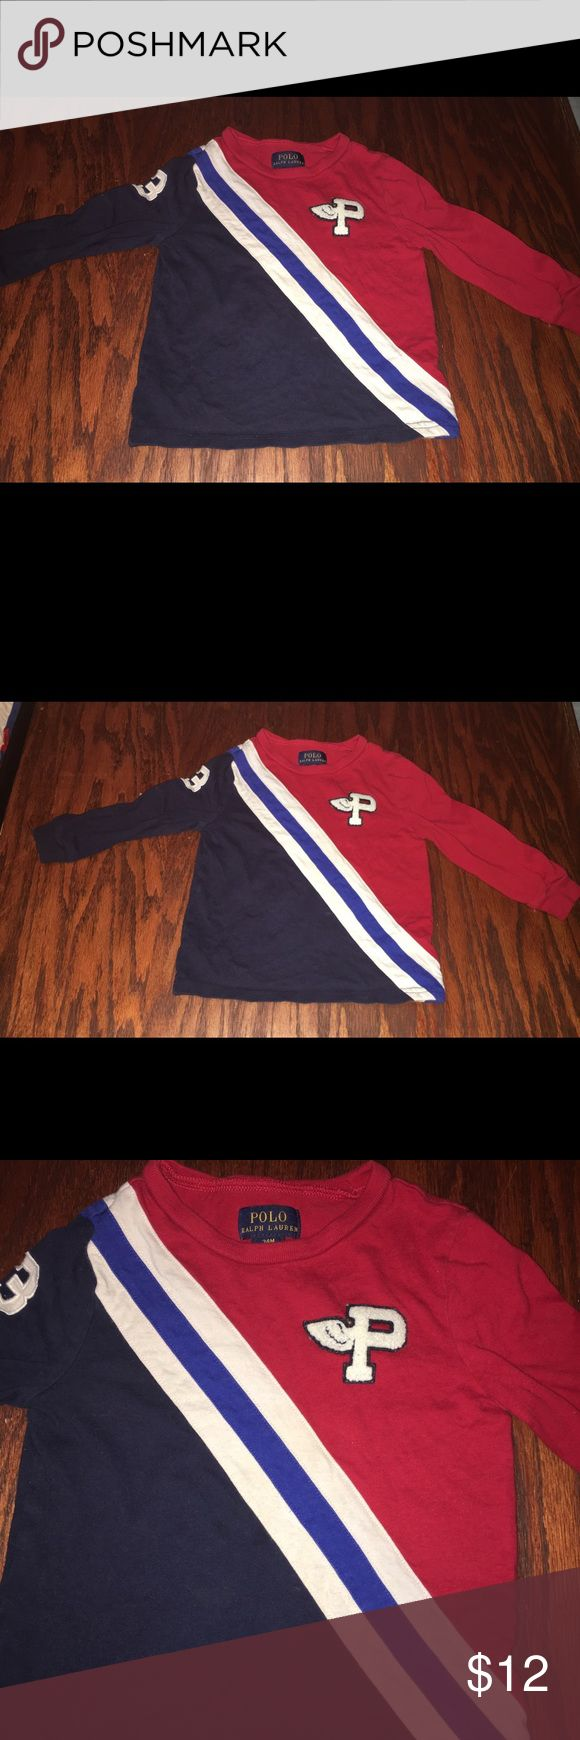 POLO Ralph Lauren 24M shirt Worn a few times cute with a puffy logo patch on shirt Sz 24M great for now and spring Polo by Ralph Lauren Shirts & Tops